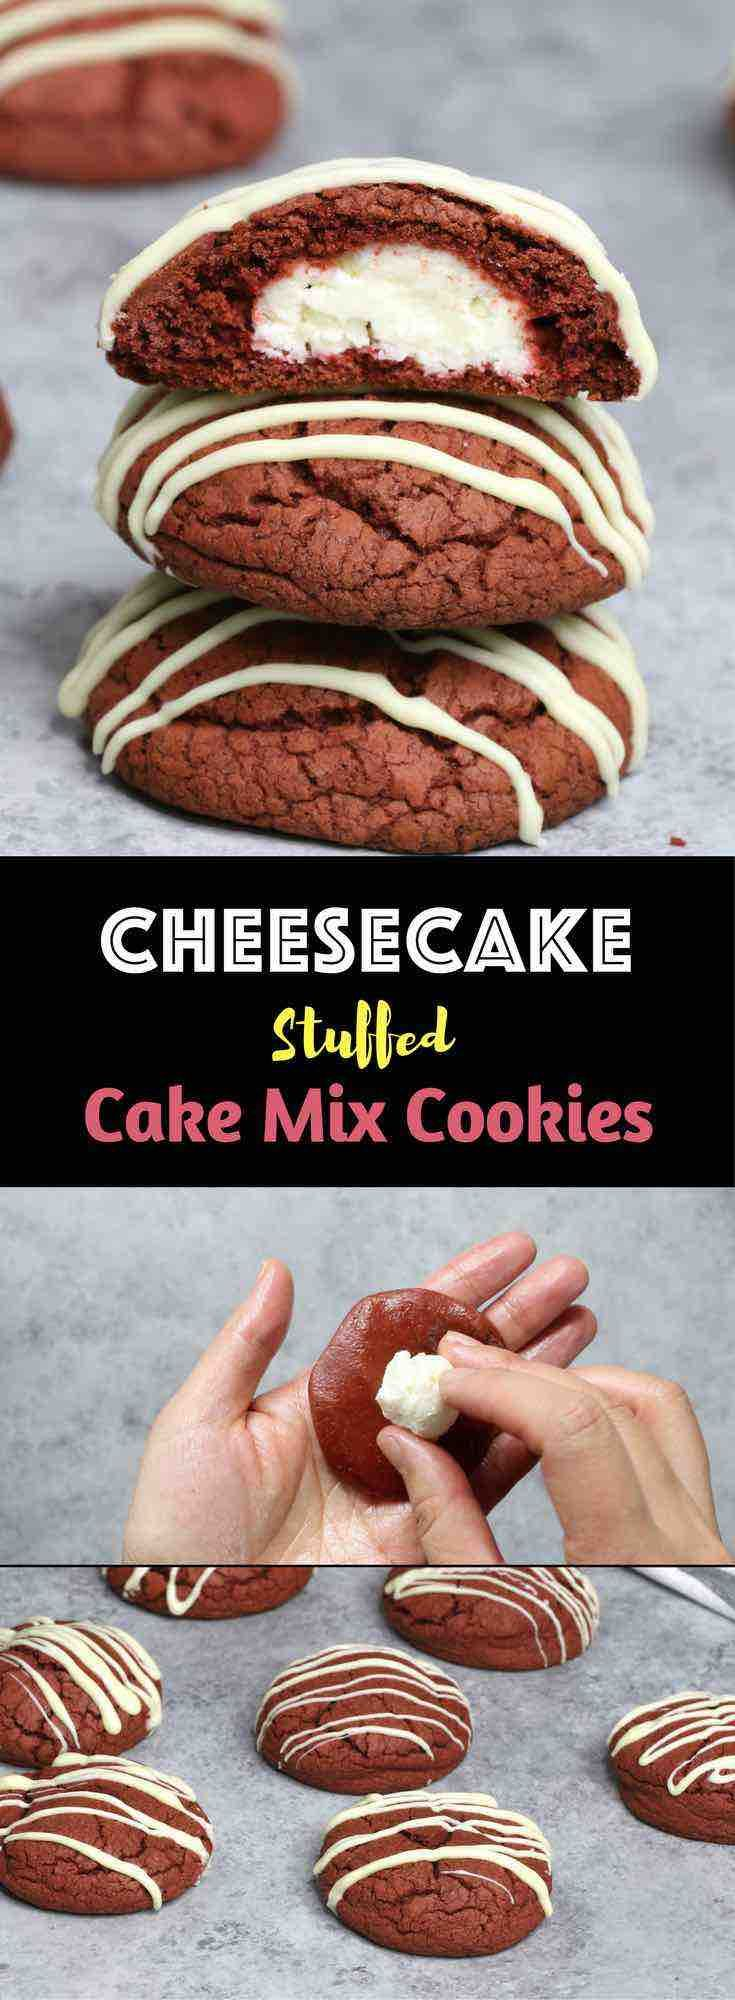 Easy Cheesecake Stuffed Cake Mix Cookies - Soft and chewy delicious cookies are made of red velvet cake mix! Cheesecake is stuffed in these cookies and you will have all your favorite flavors in bite! All you need is a few simple ingredients: Red Velvet cake mix, cream cheese, white chocolate, powdered sugar, flour, egg and oil! So Good! Home made gift recipes. Mother's Day recipe. Vegetarian. Video recipe.